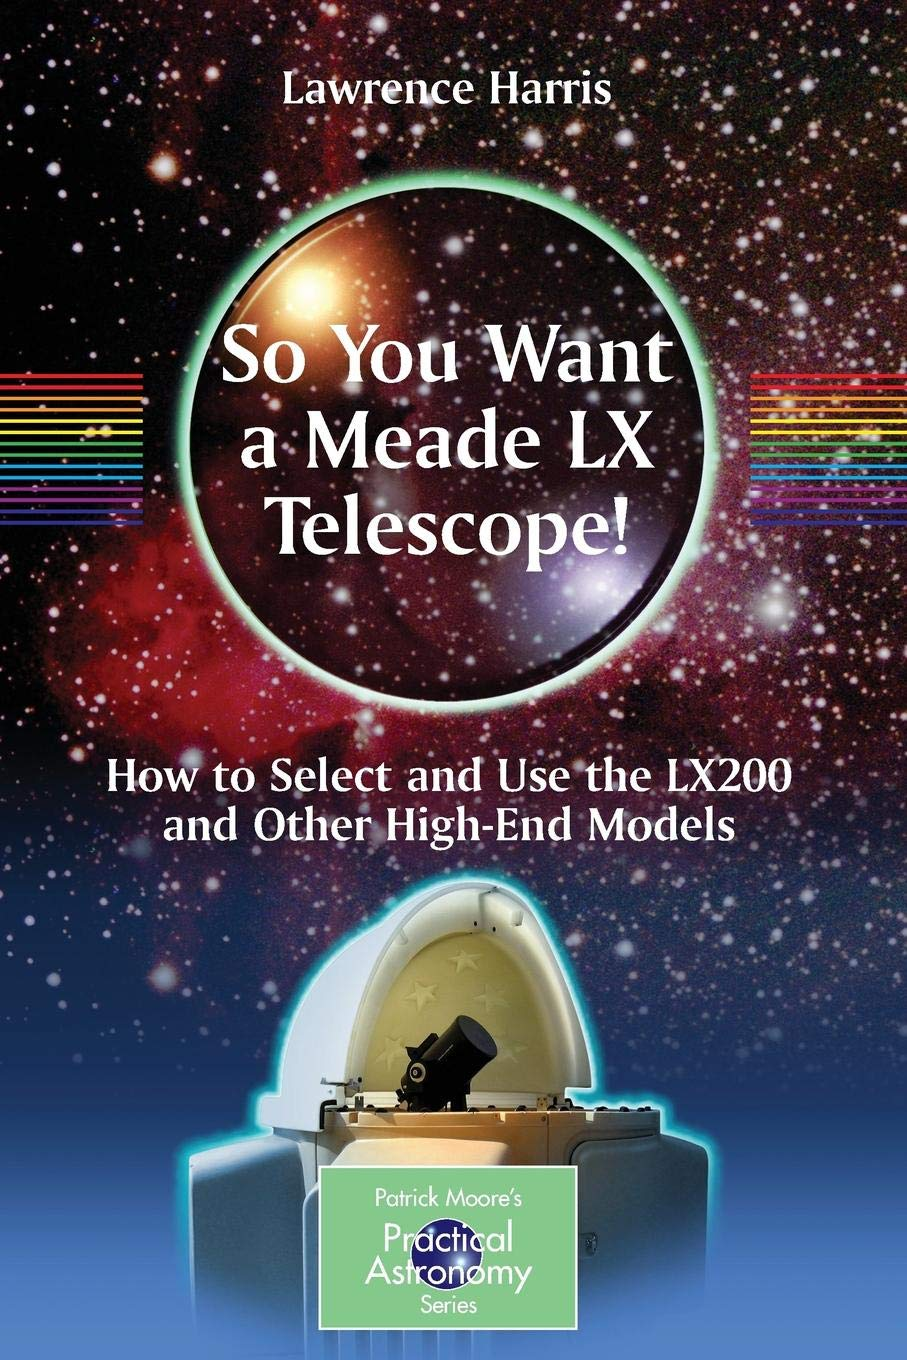 So You Want a Meade LX Telescope!: How to Select and Use the LX200 and Other High End Models